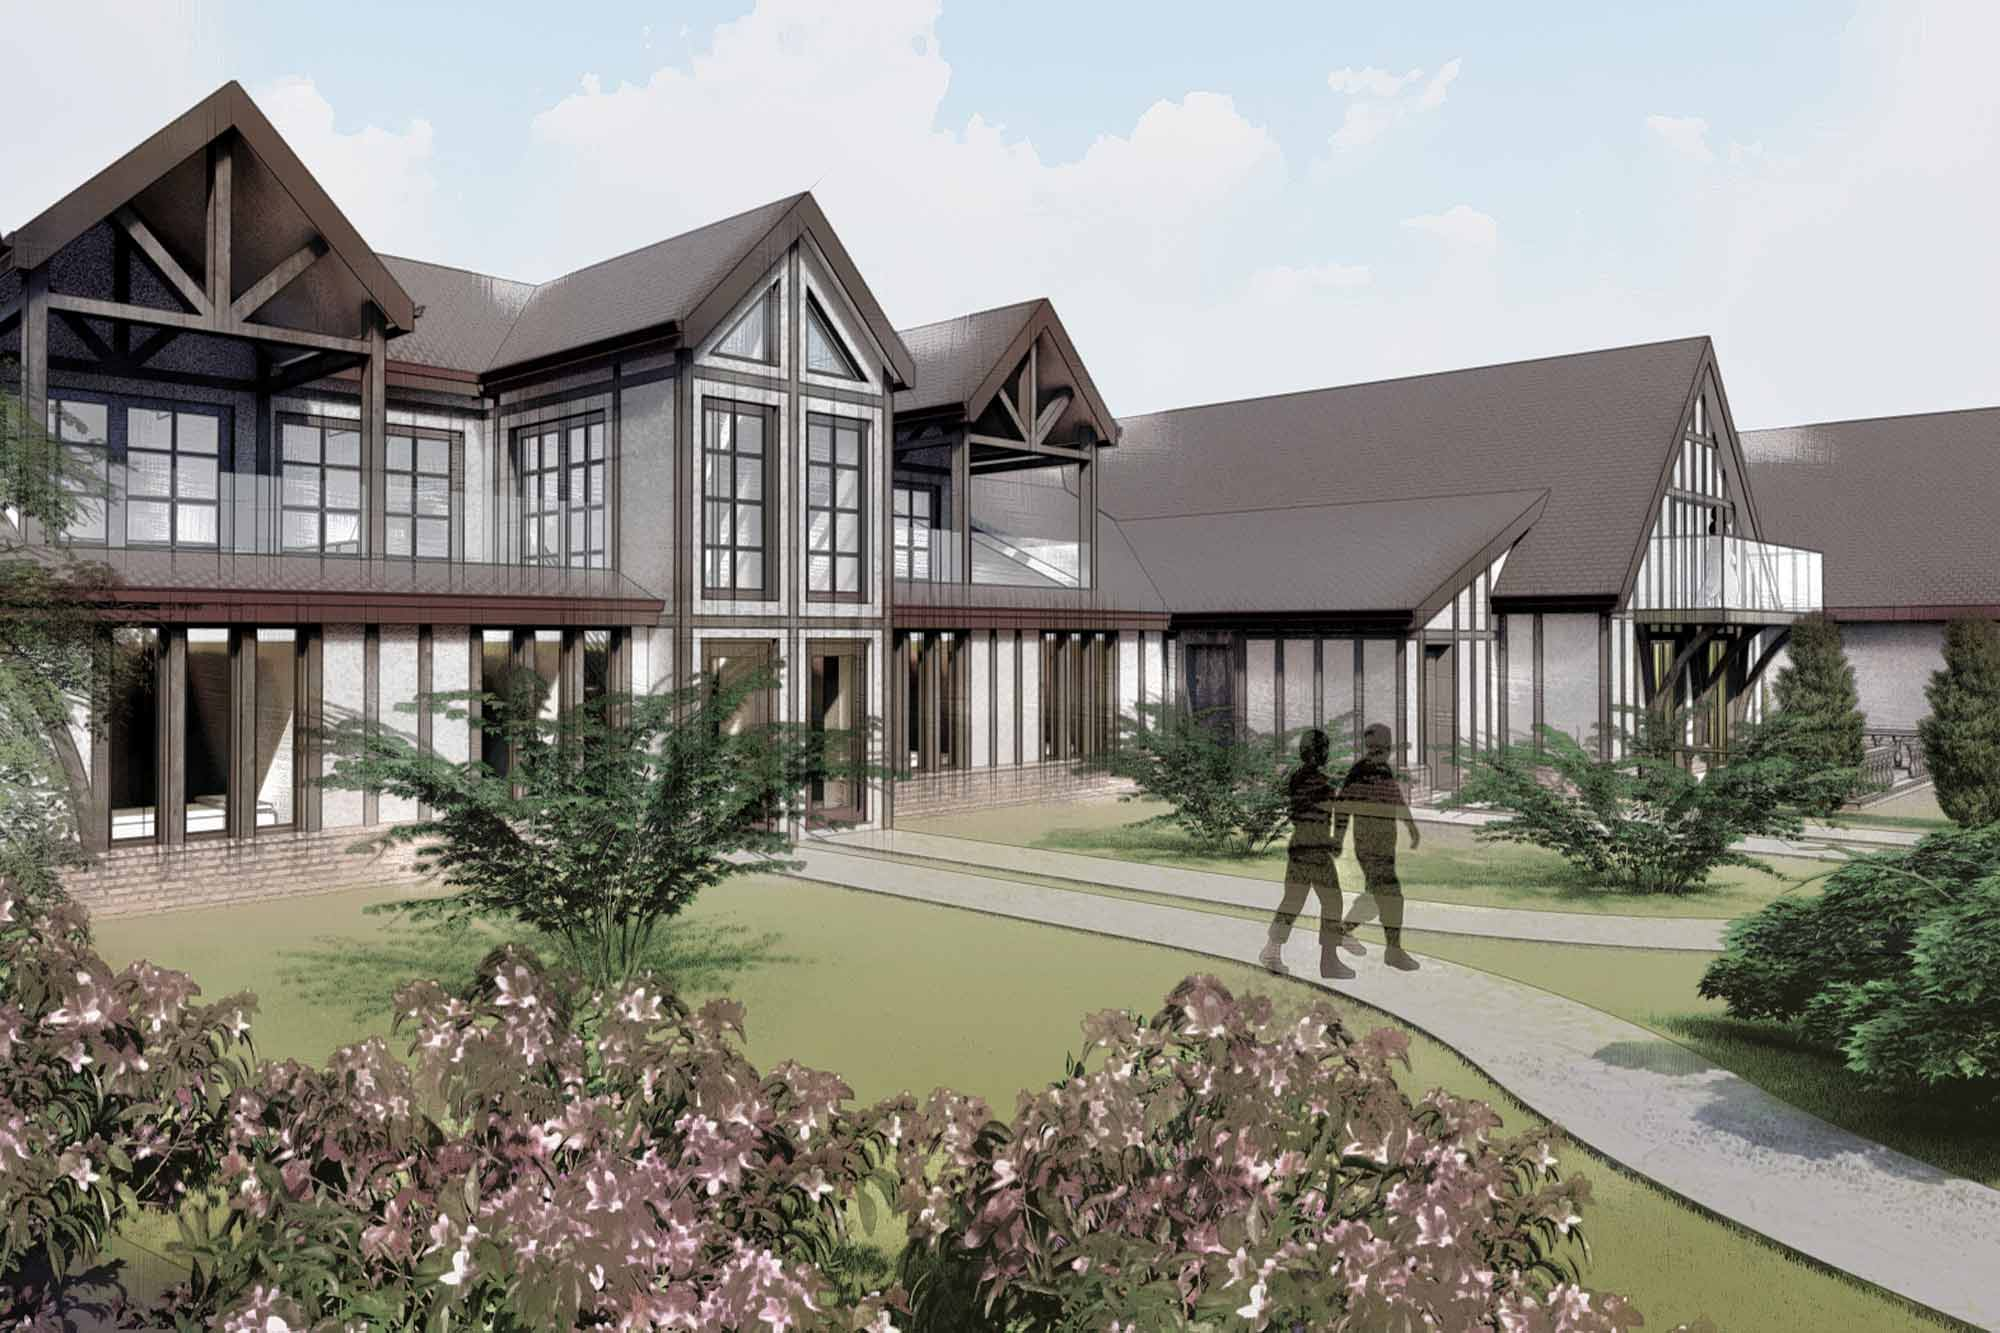 Redevelopment of an existing listed grand hall into five rustic cottages in Poulton-le-Fylde countryside, Lancashire